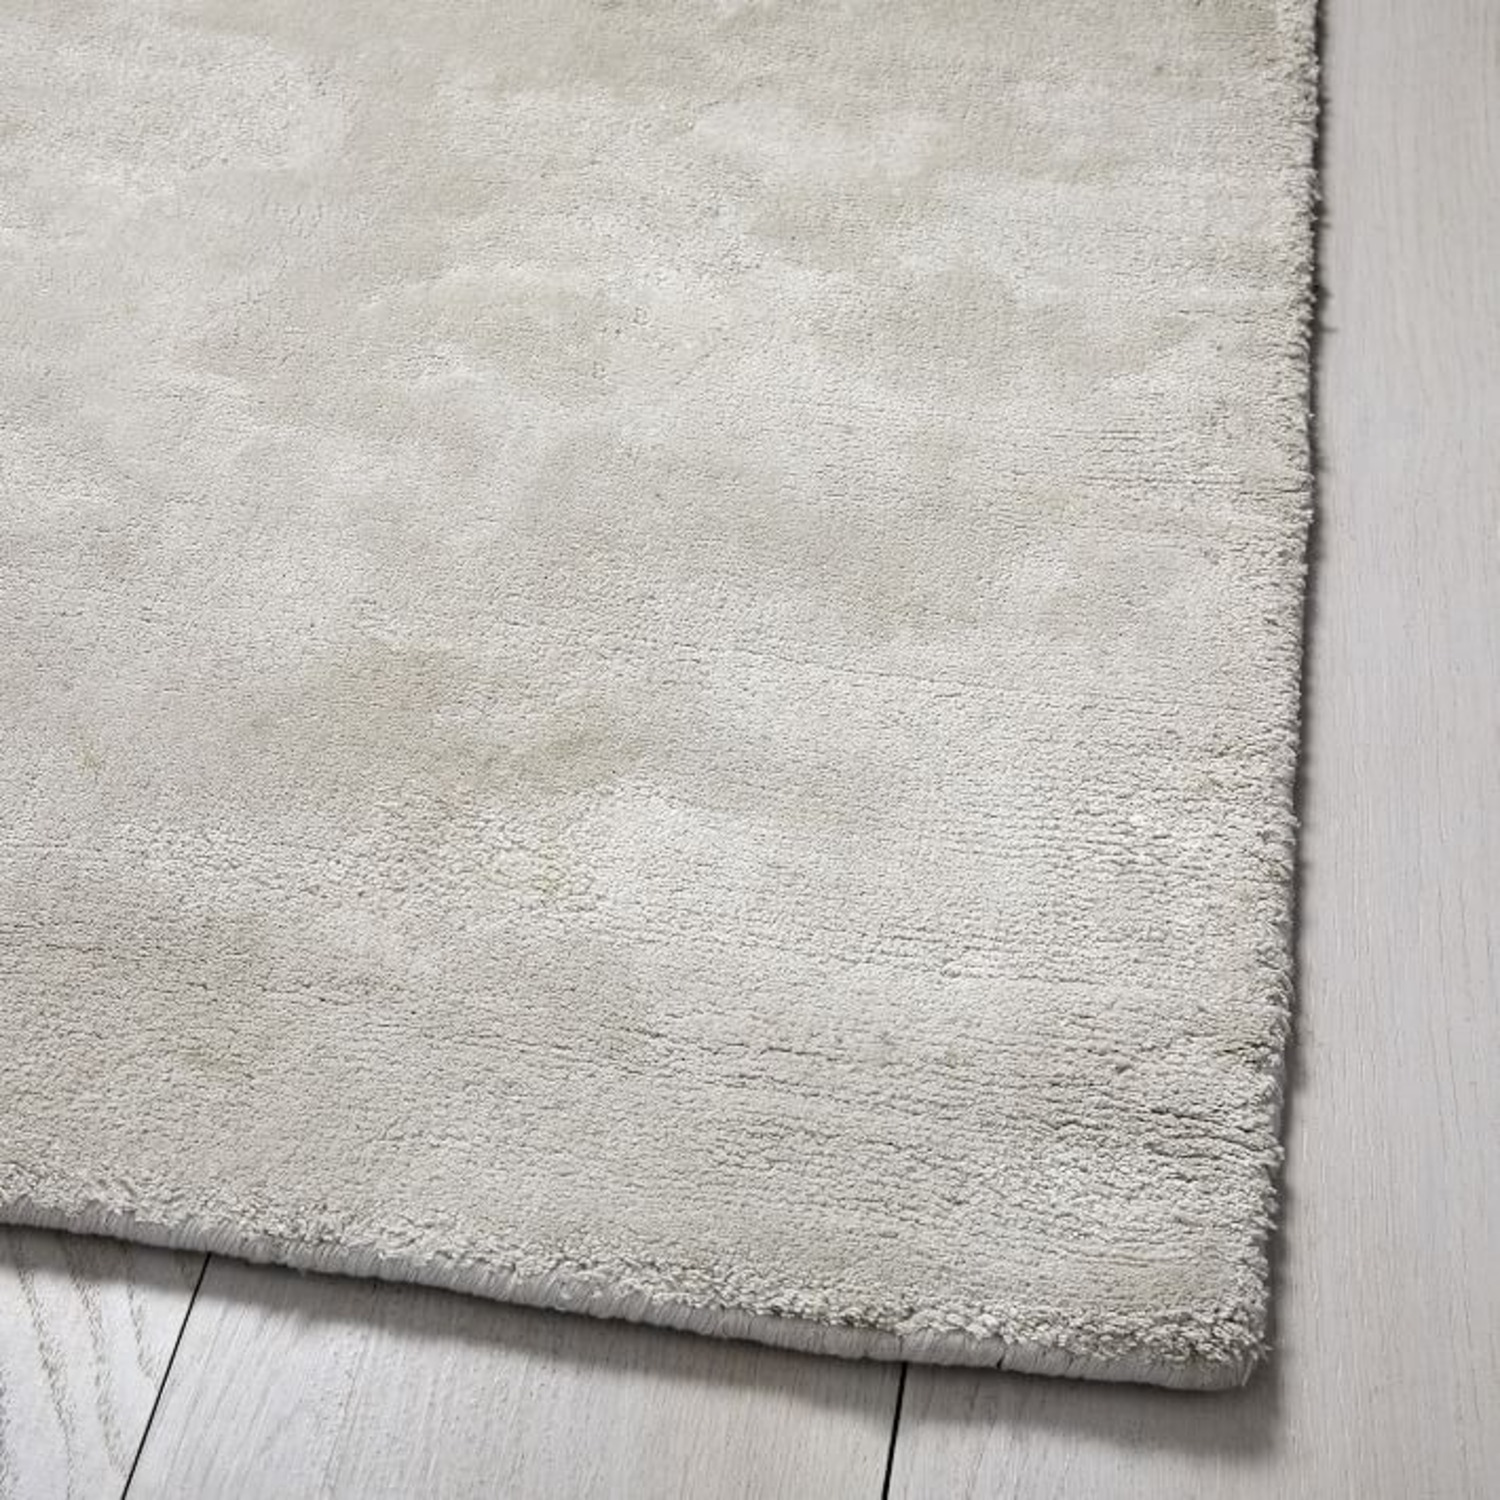 West Elm Lucent Rug, Frost Gray - image-3